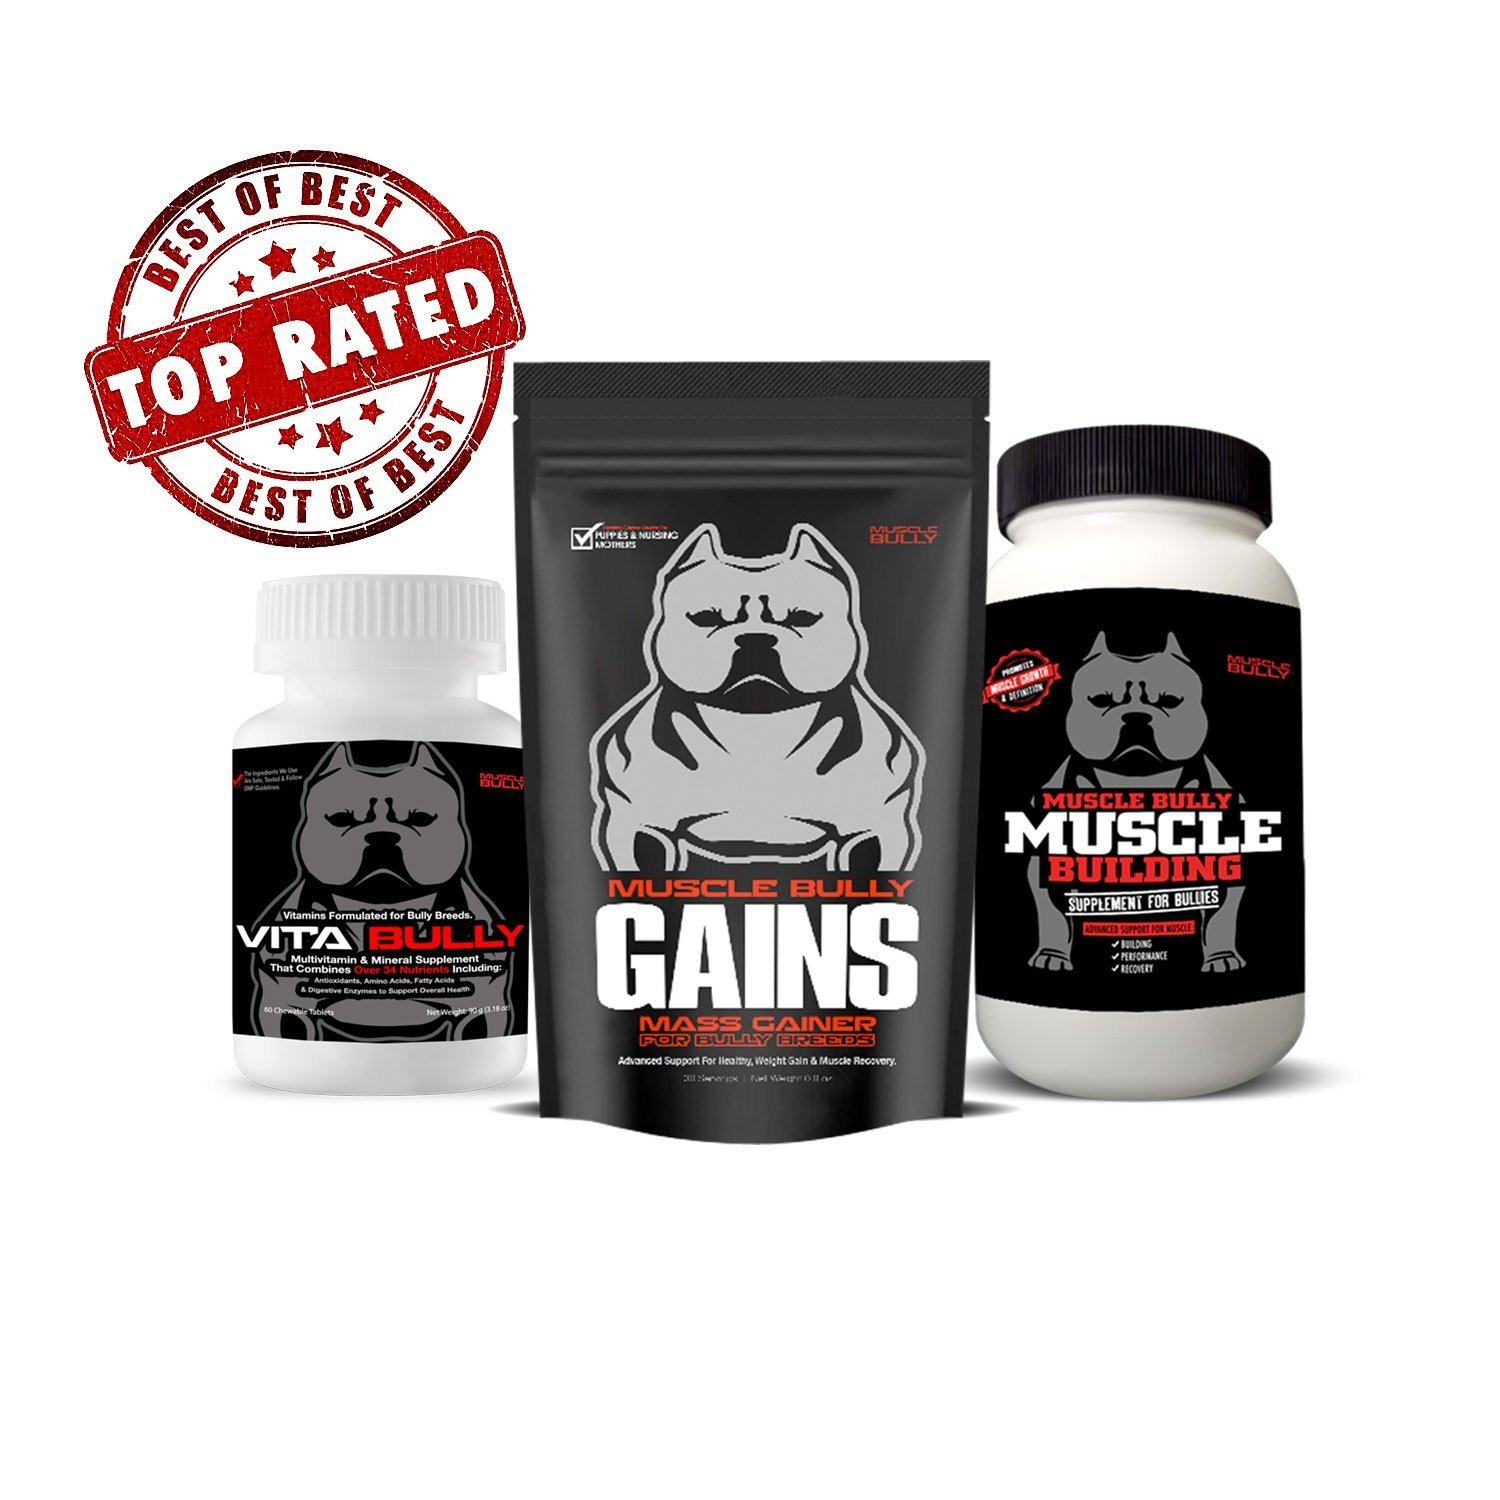 Amazon.com : Muscle Bully Gains + Vita Bully + Muscle Builder Supplement : Pet Supplies